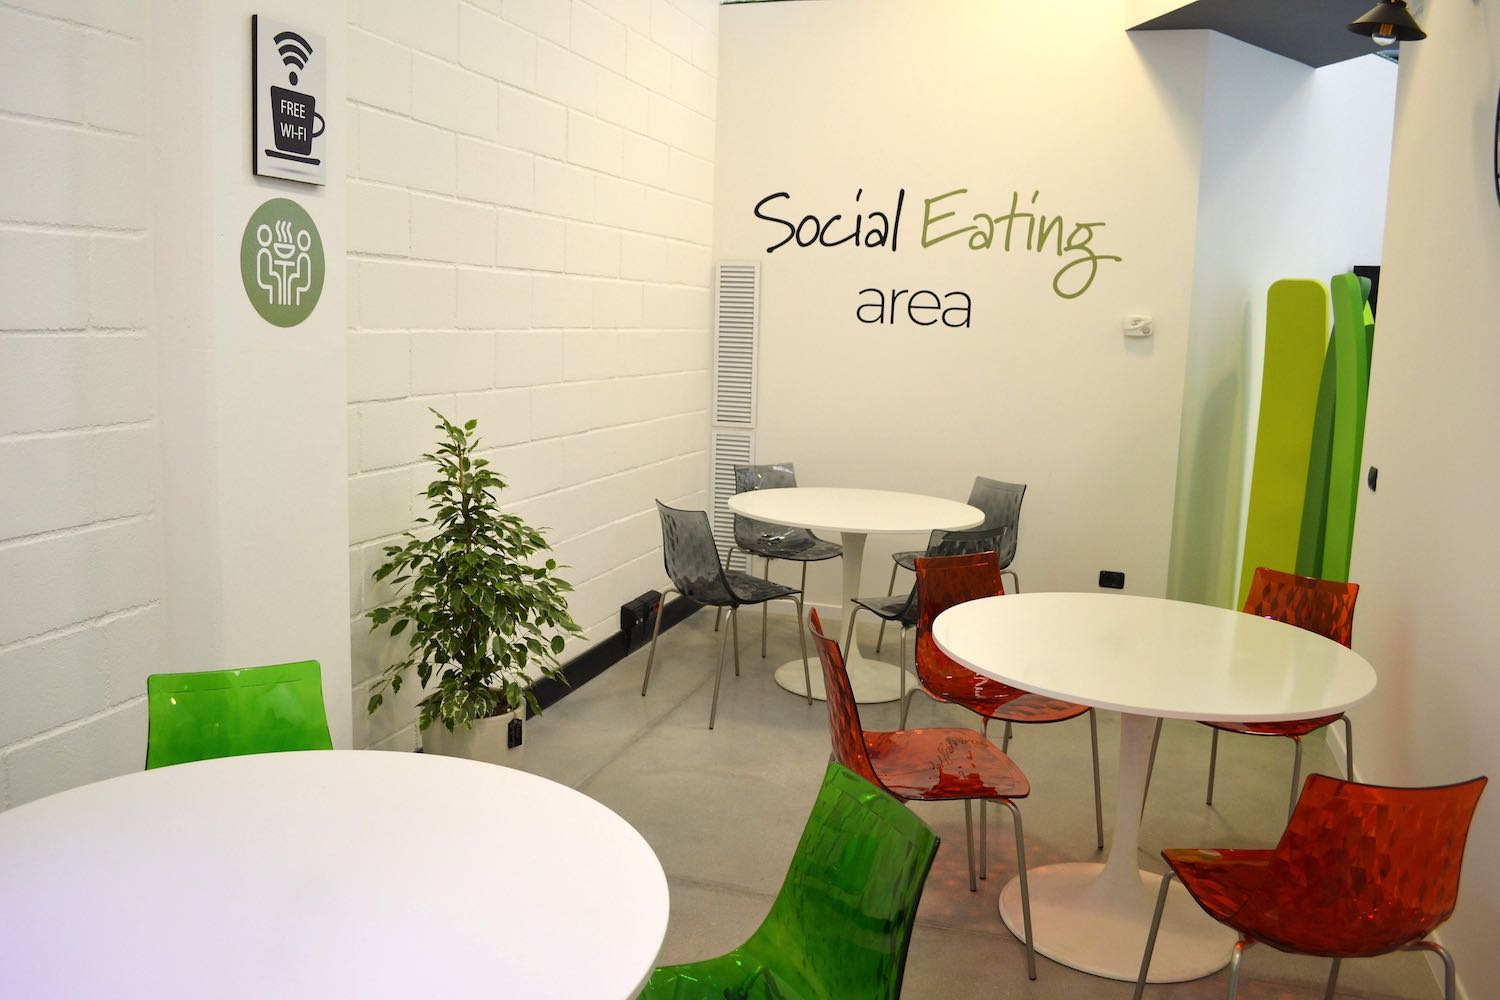 Social eating area